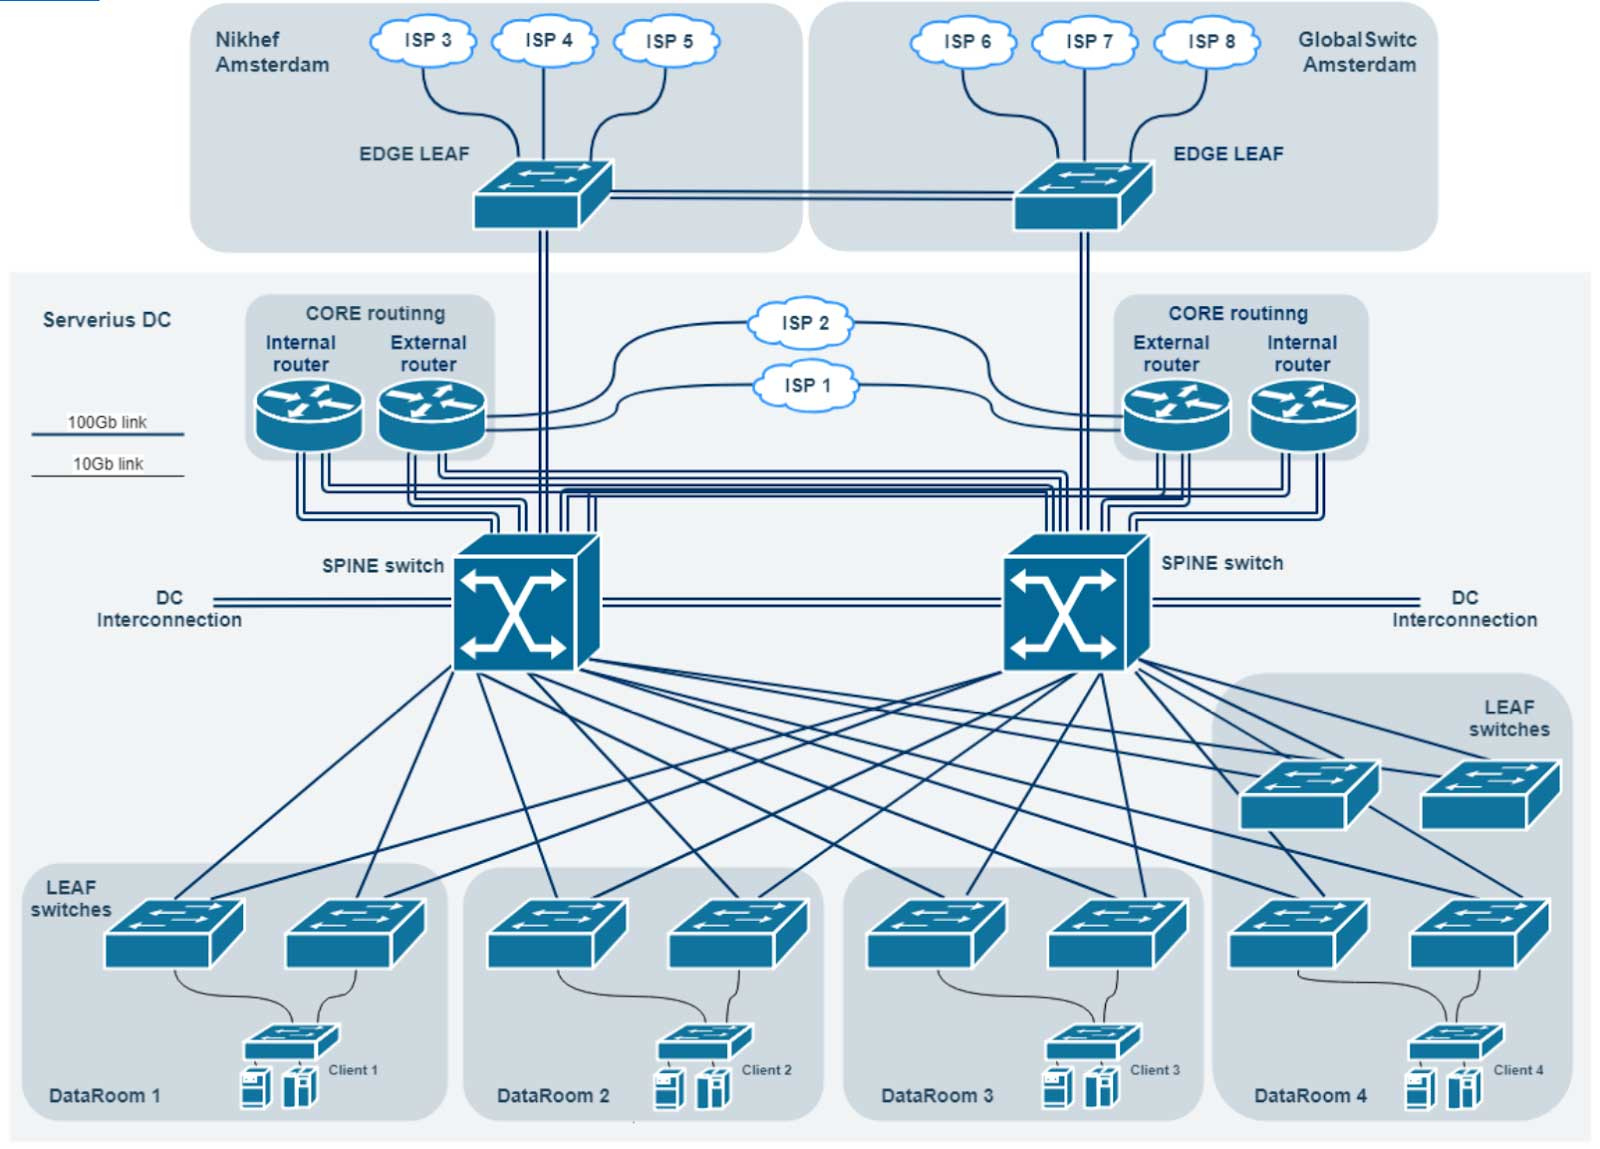 Serverius switching network upgrade - Colocation datacenter